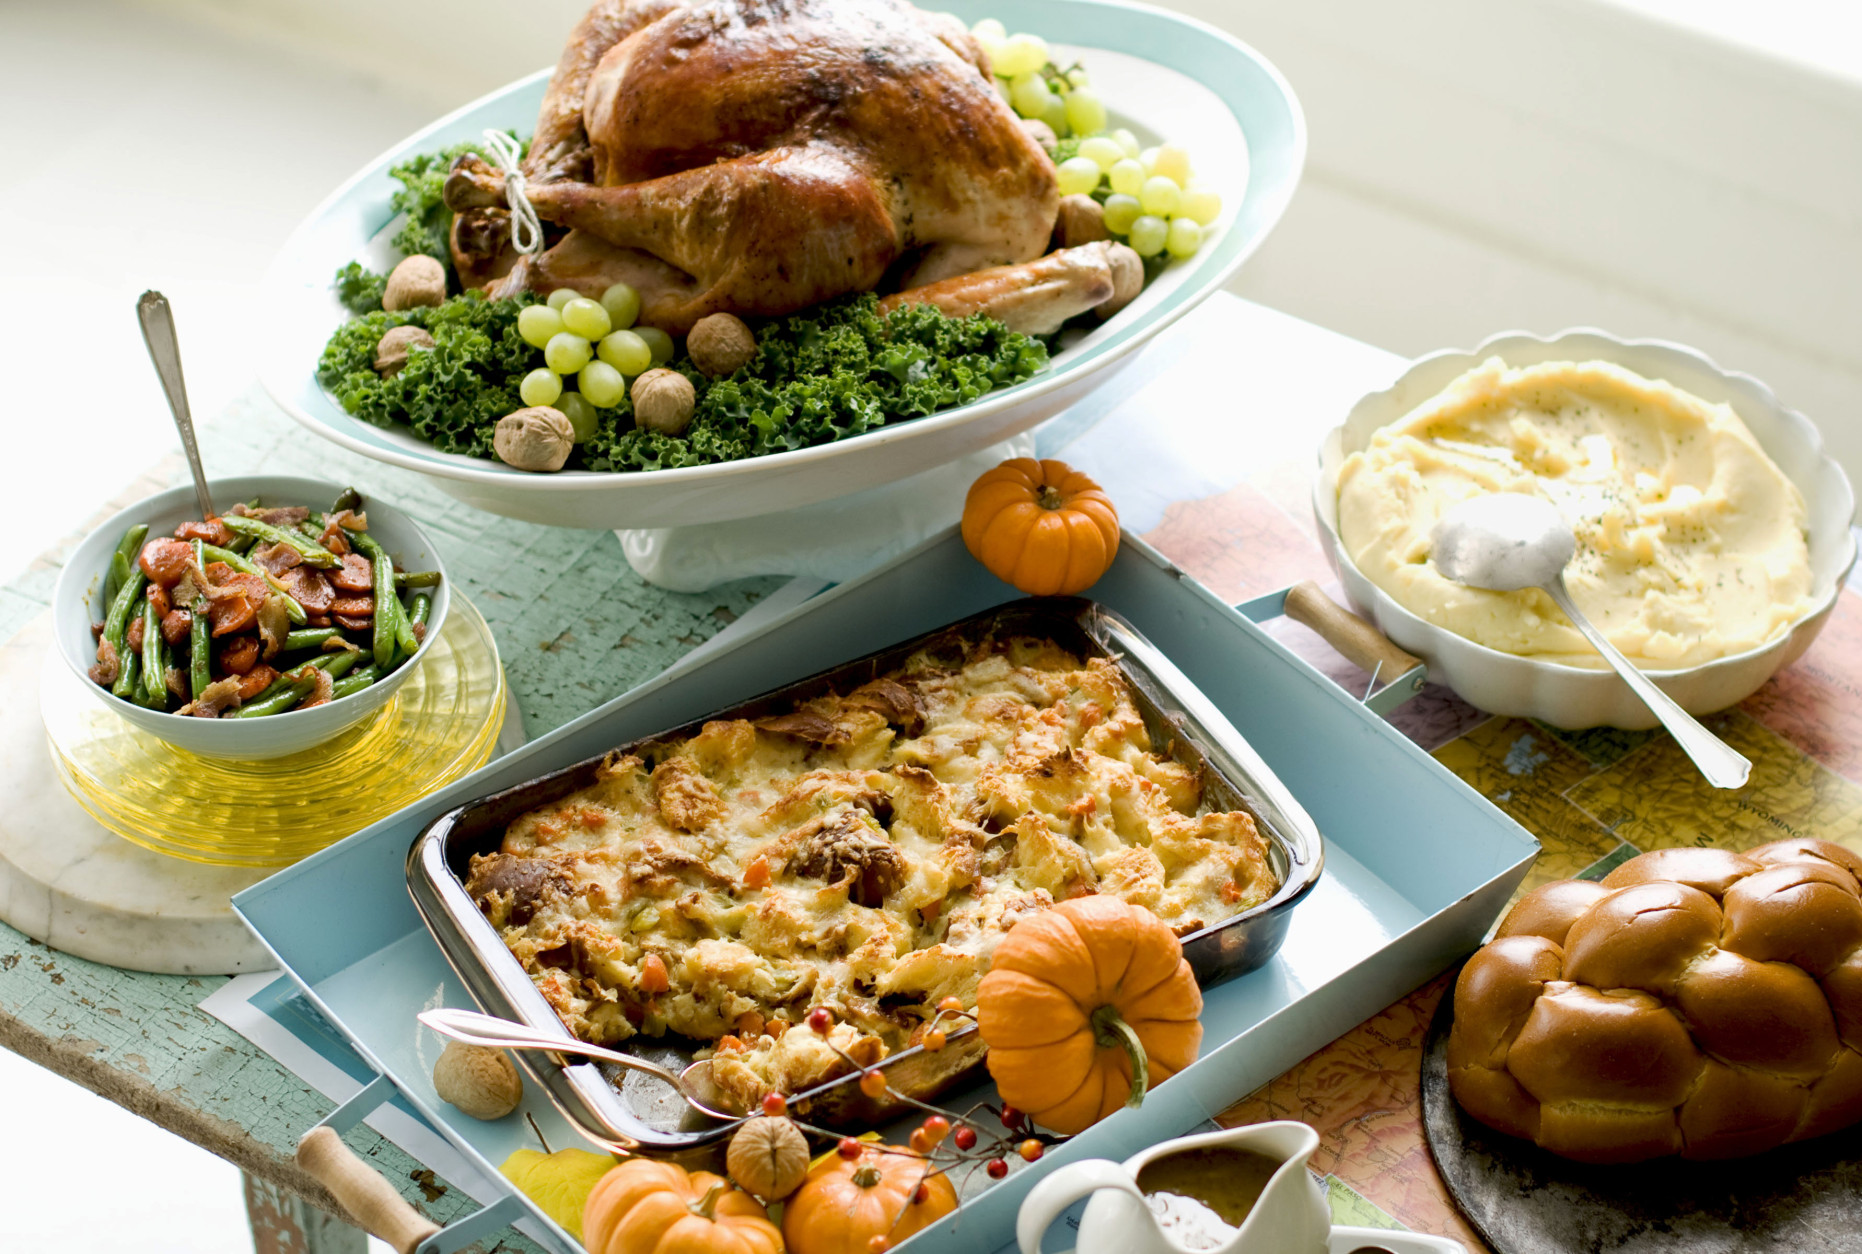 In this image taken on Oct. 2, 2012, plain Jane turkey and gravy, cheesy stuffing, buttery mashed potatoes, sweet and sour glazed carrots, and green beans are shown in Concord, N.H. (AP Photo/Matthew Mead)